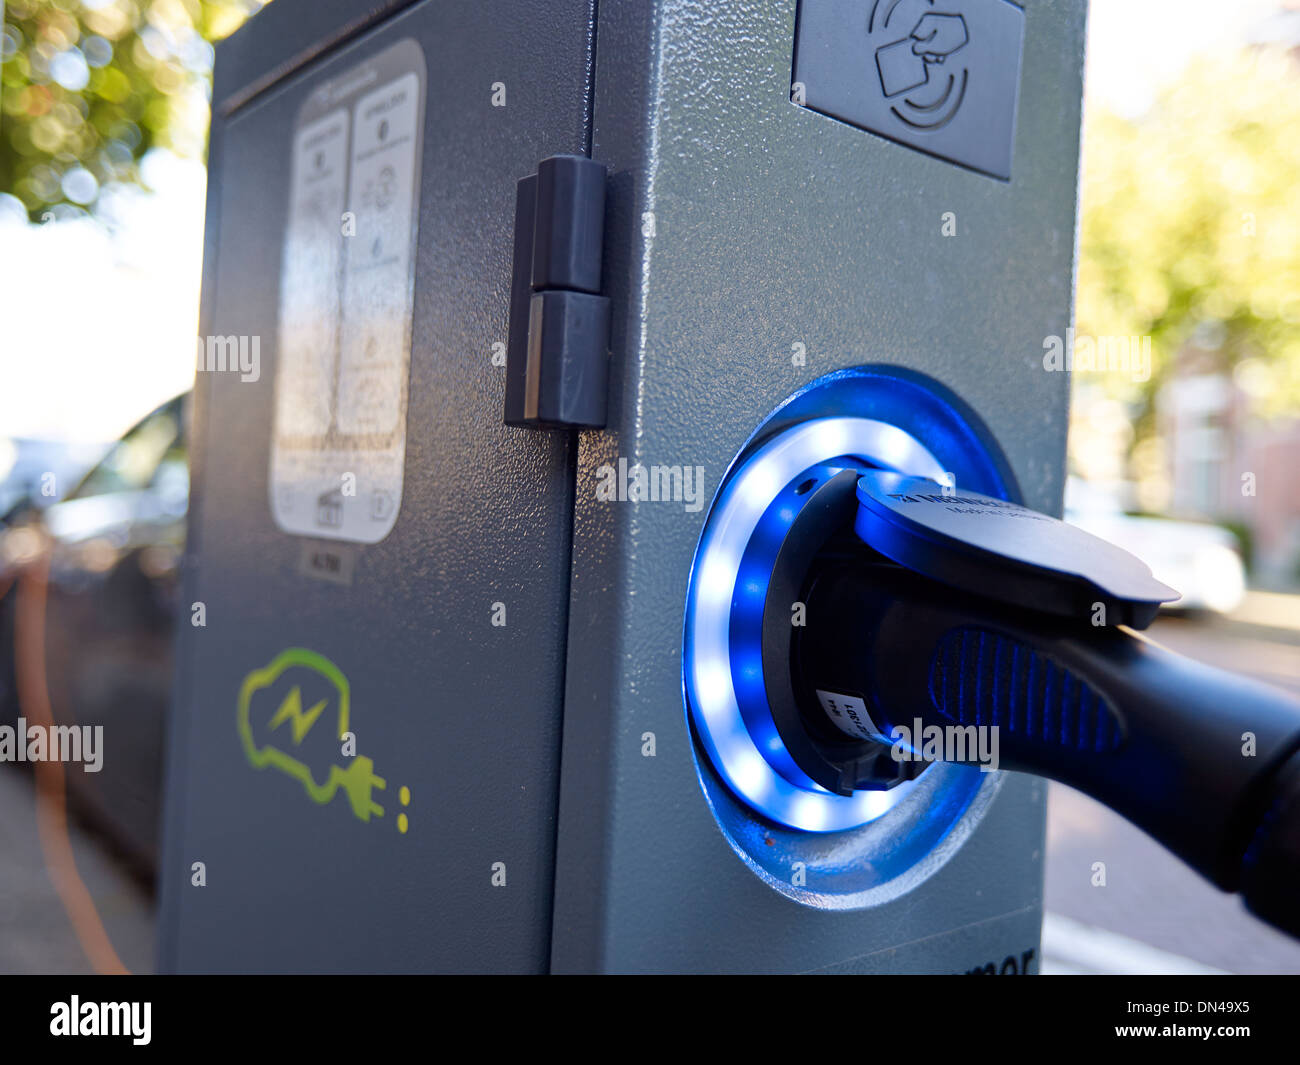 Electric car charging point on the street - Stock Image